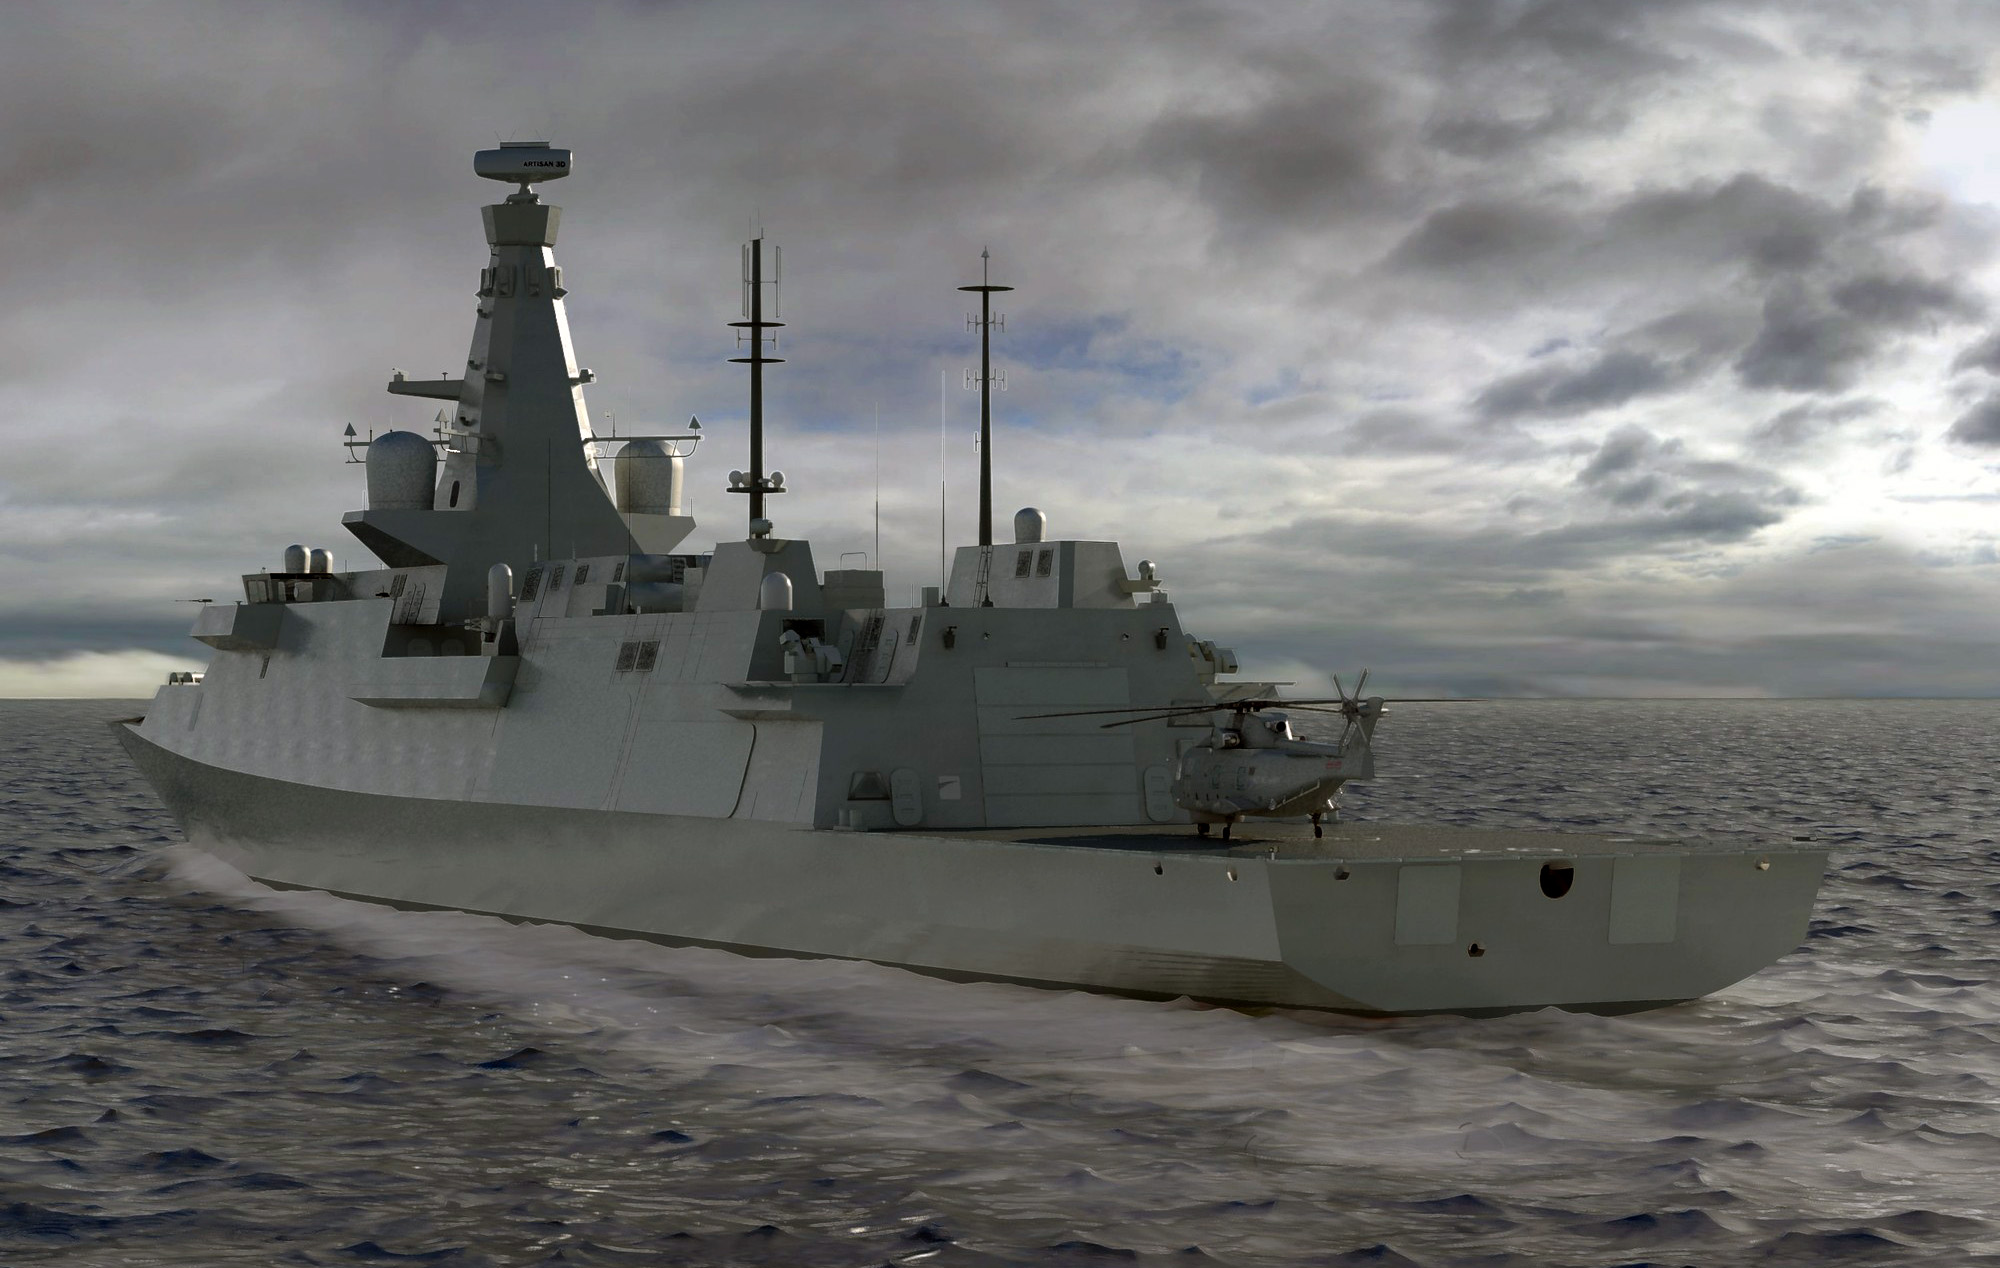 IMAGE 3: Type 26 Global Combat Ship exterior